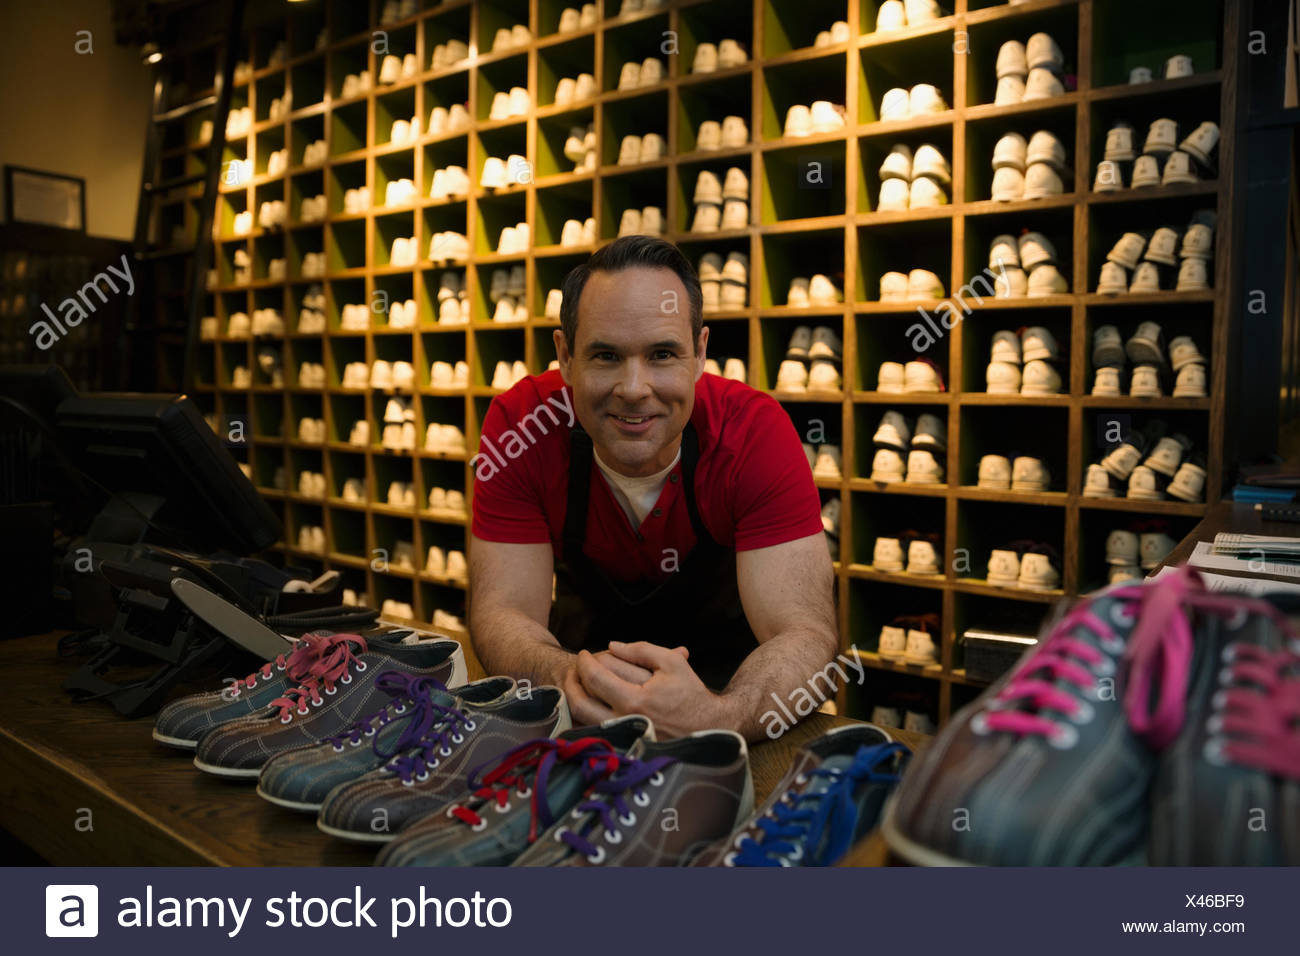 Portrait confident worker at bowling shoe rental counter - Stock Image